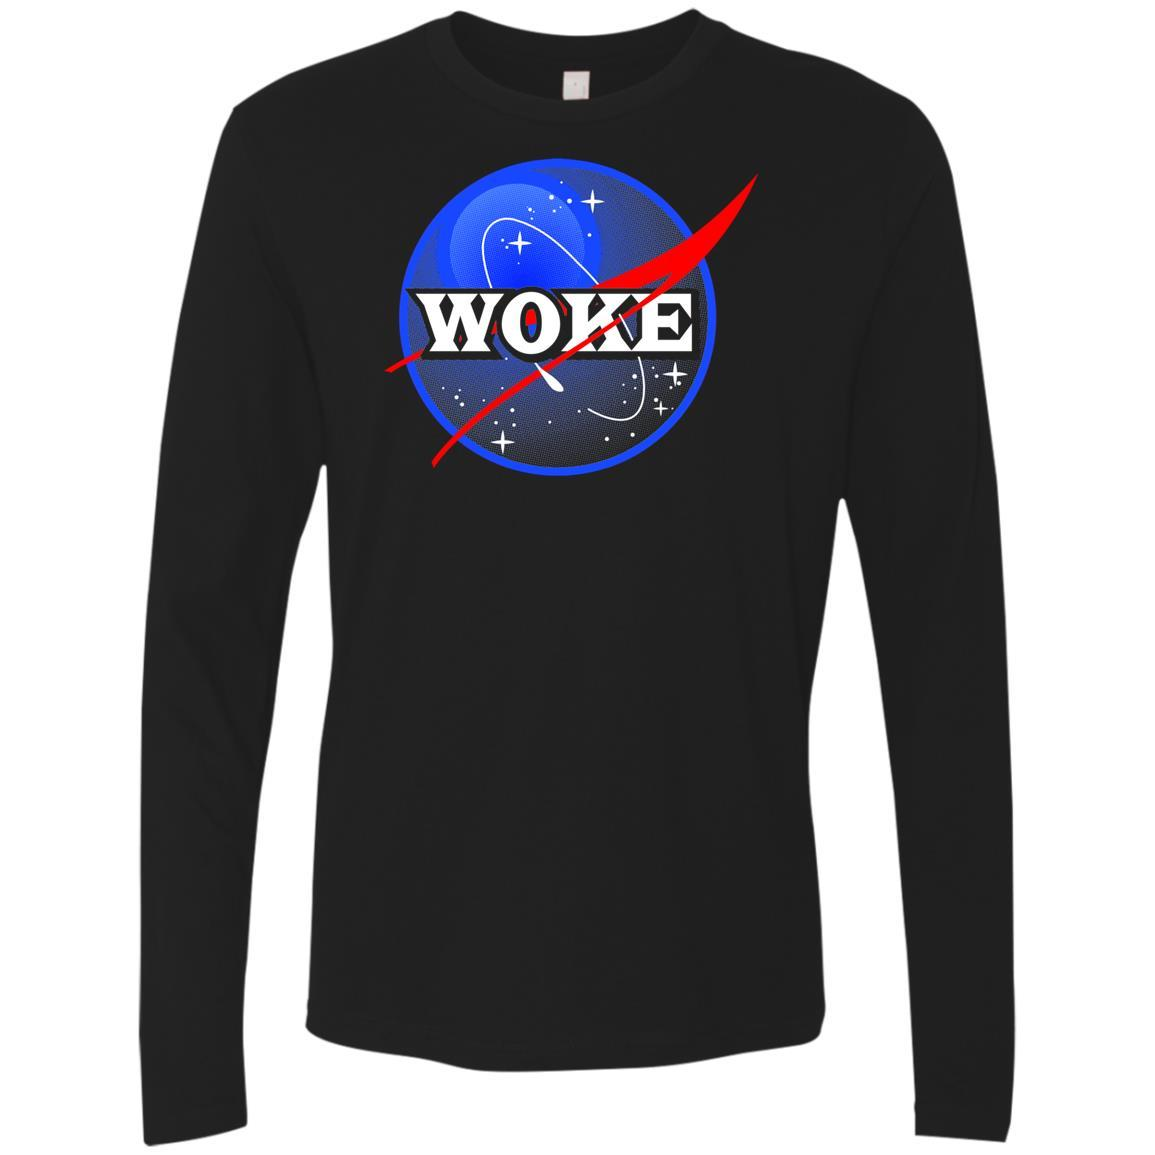 T-Shirts - Woke Premium Long Sleeve